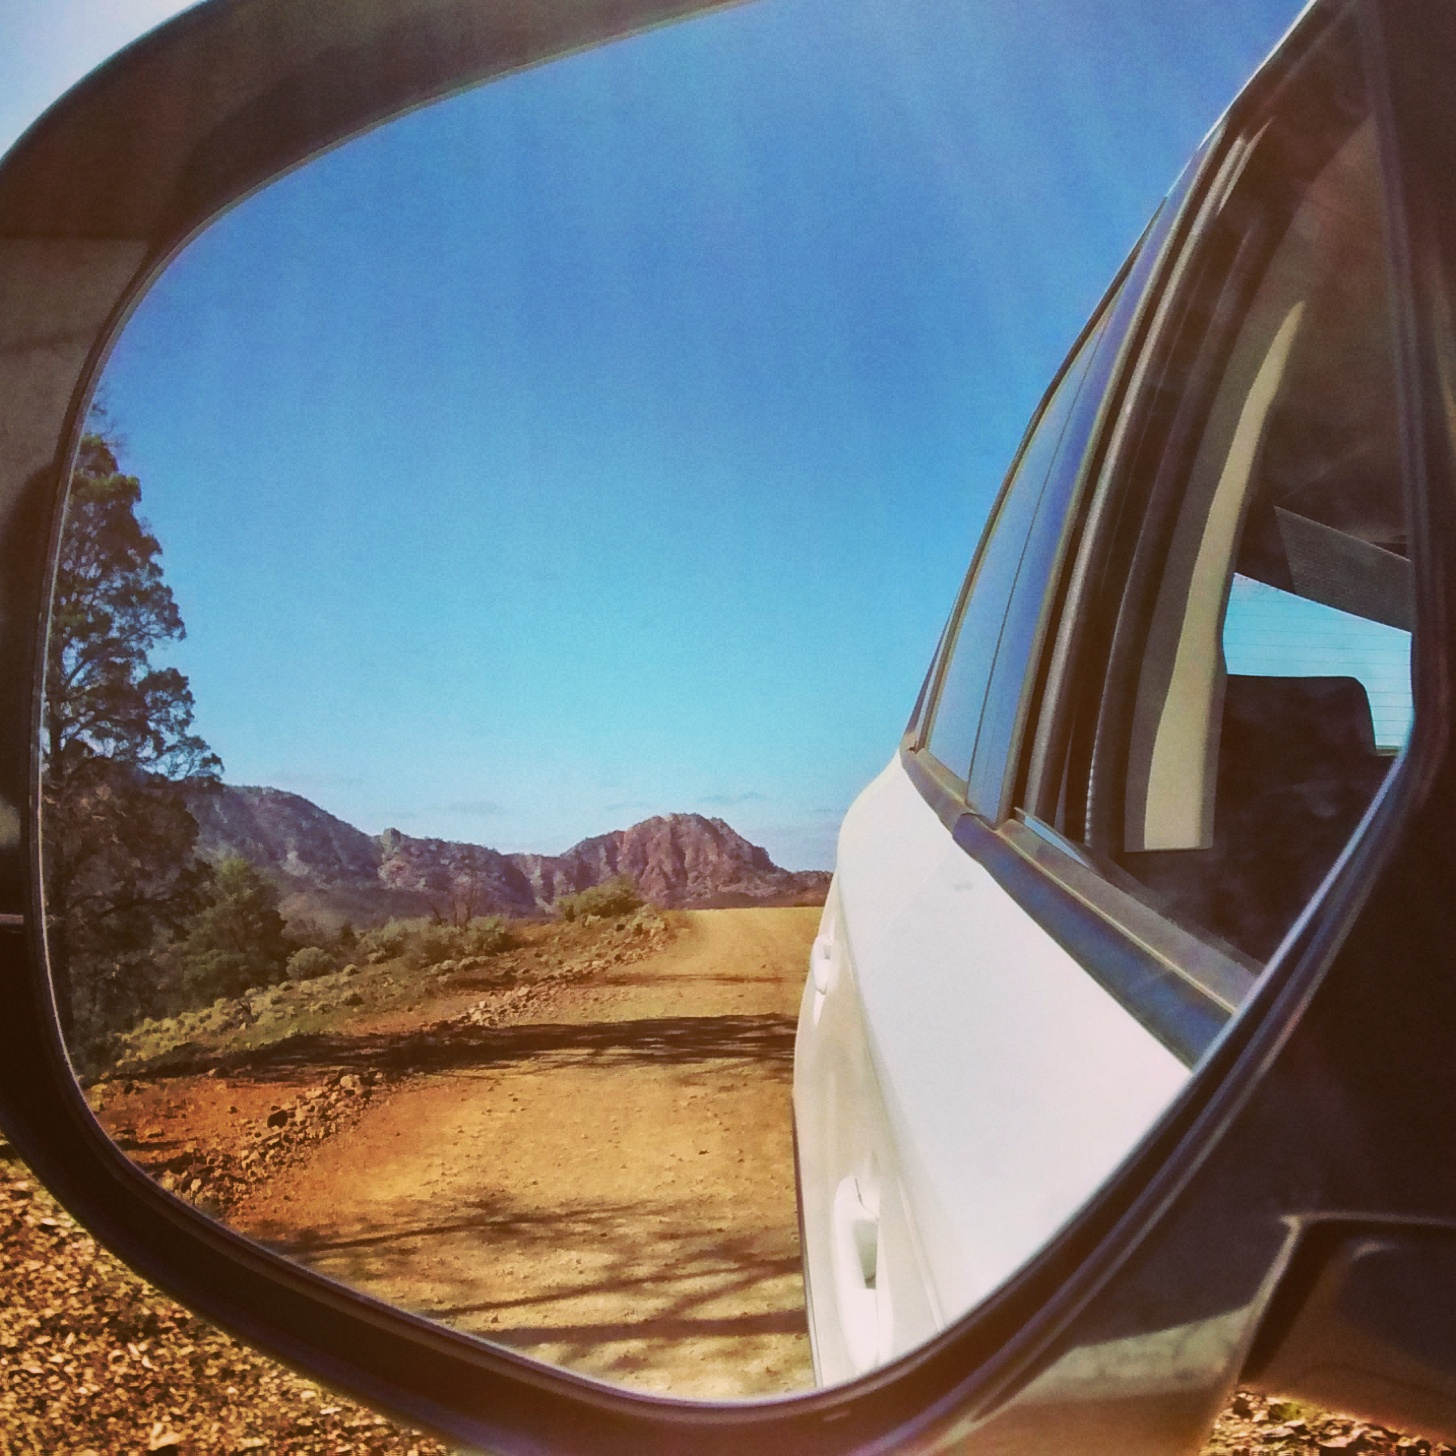 Ikara-Flinders Ranges National Park, SA